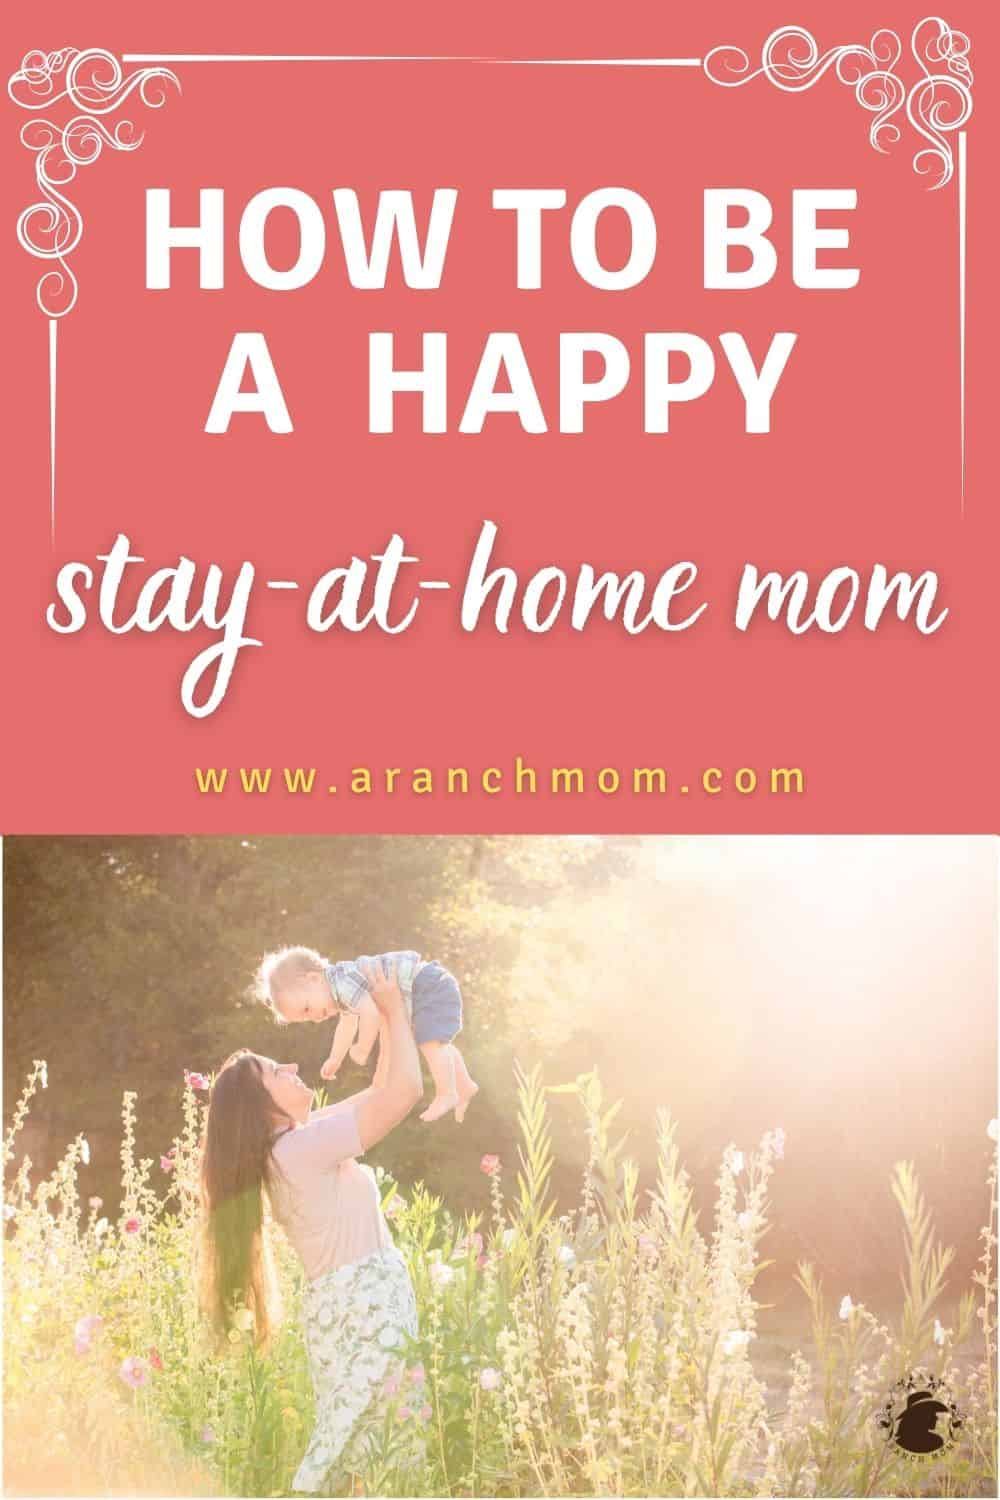 happy mom and baby pin image